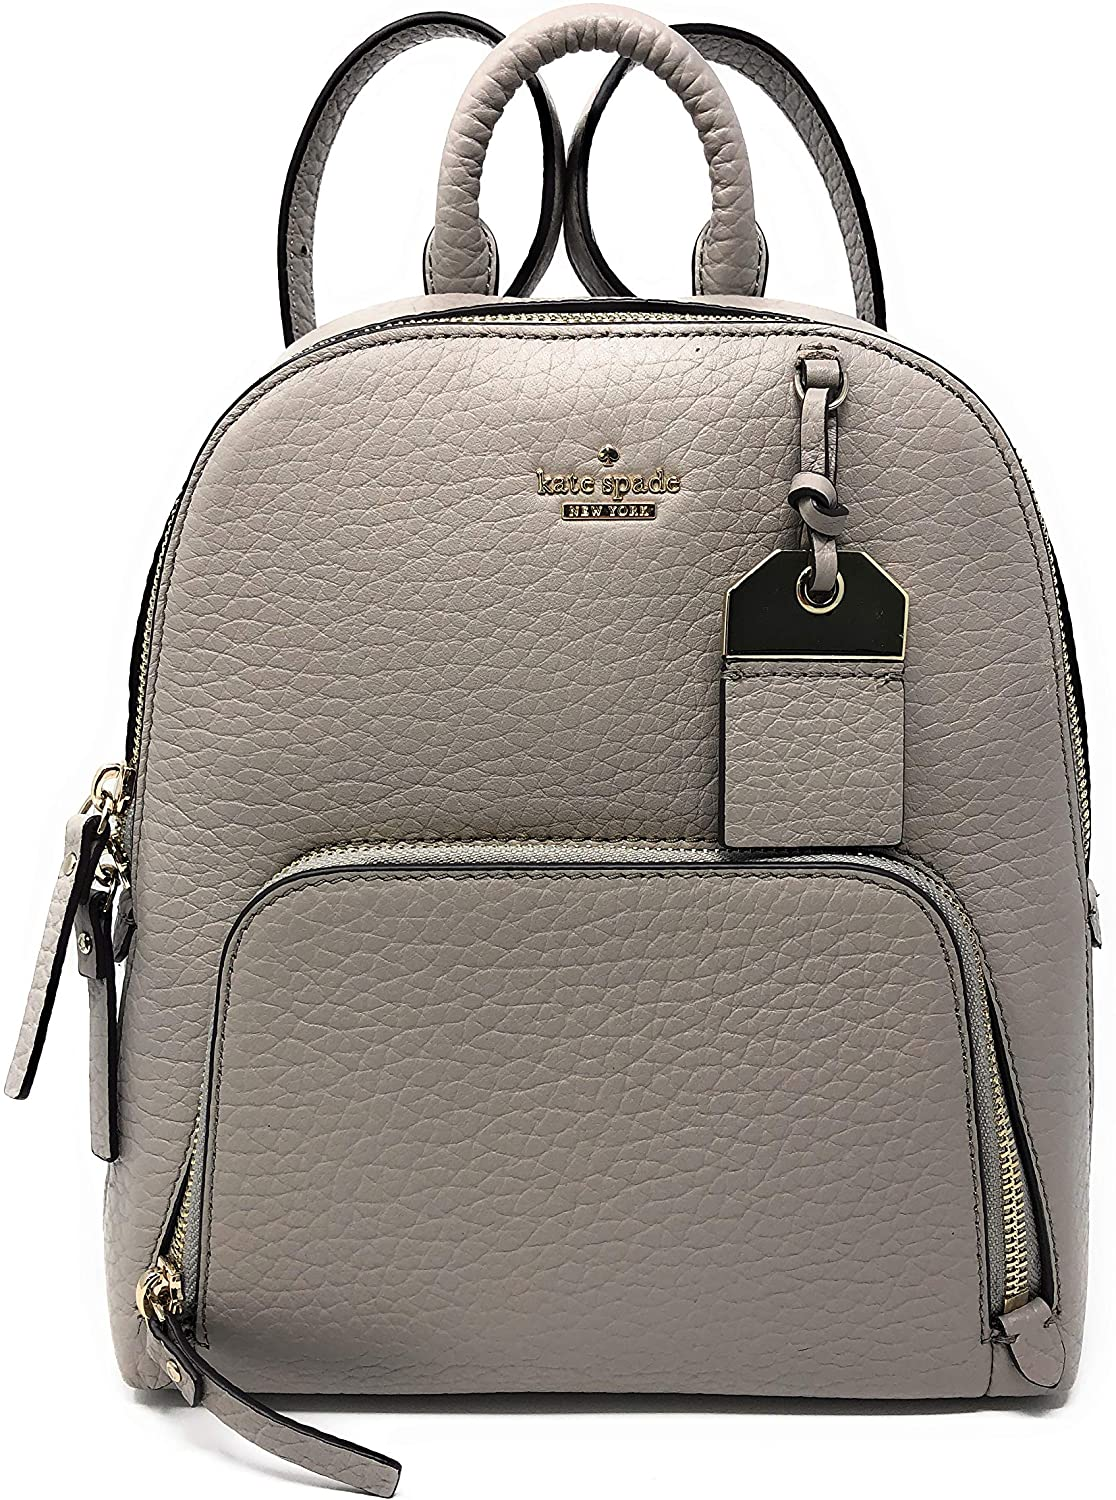 Kate Spade New York Caden Carter Leather Backpack